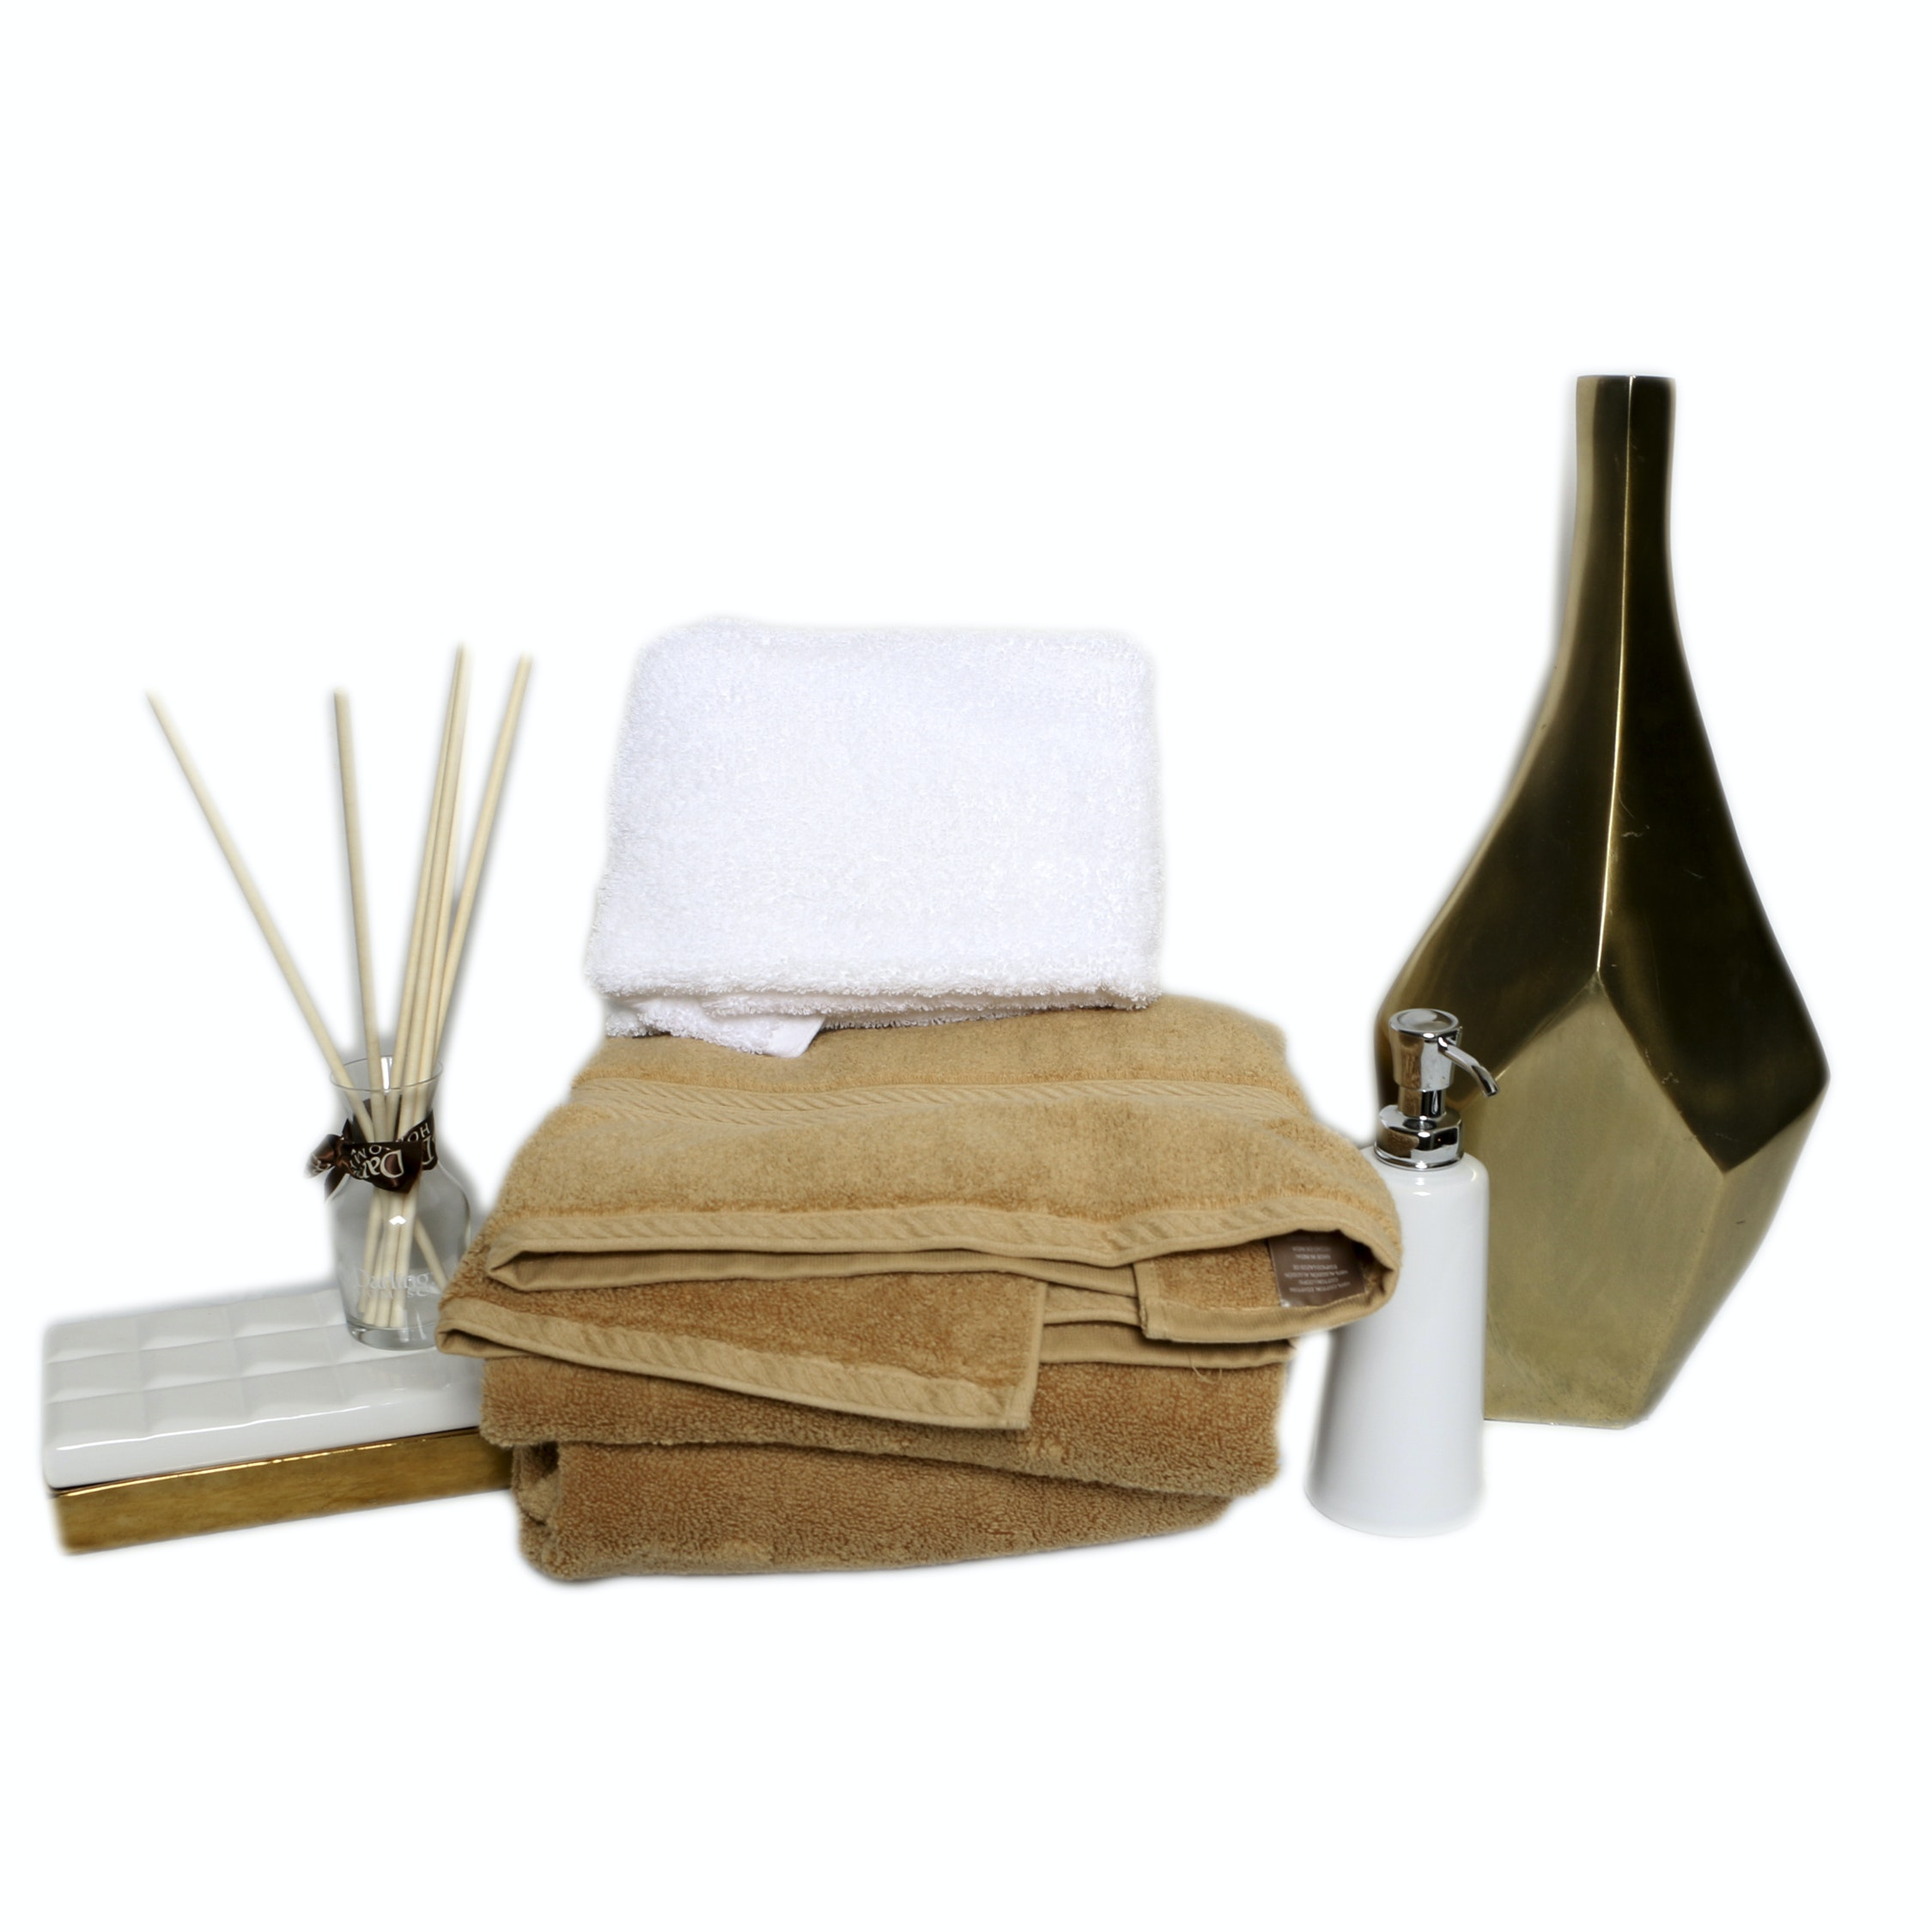 Towels, Soap Dispenser, and Lidded Box with Vase